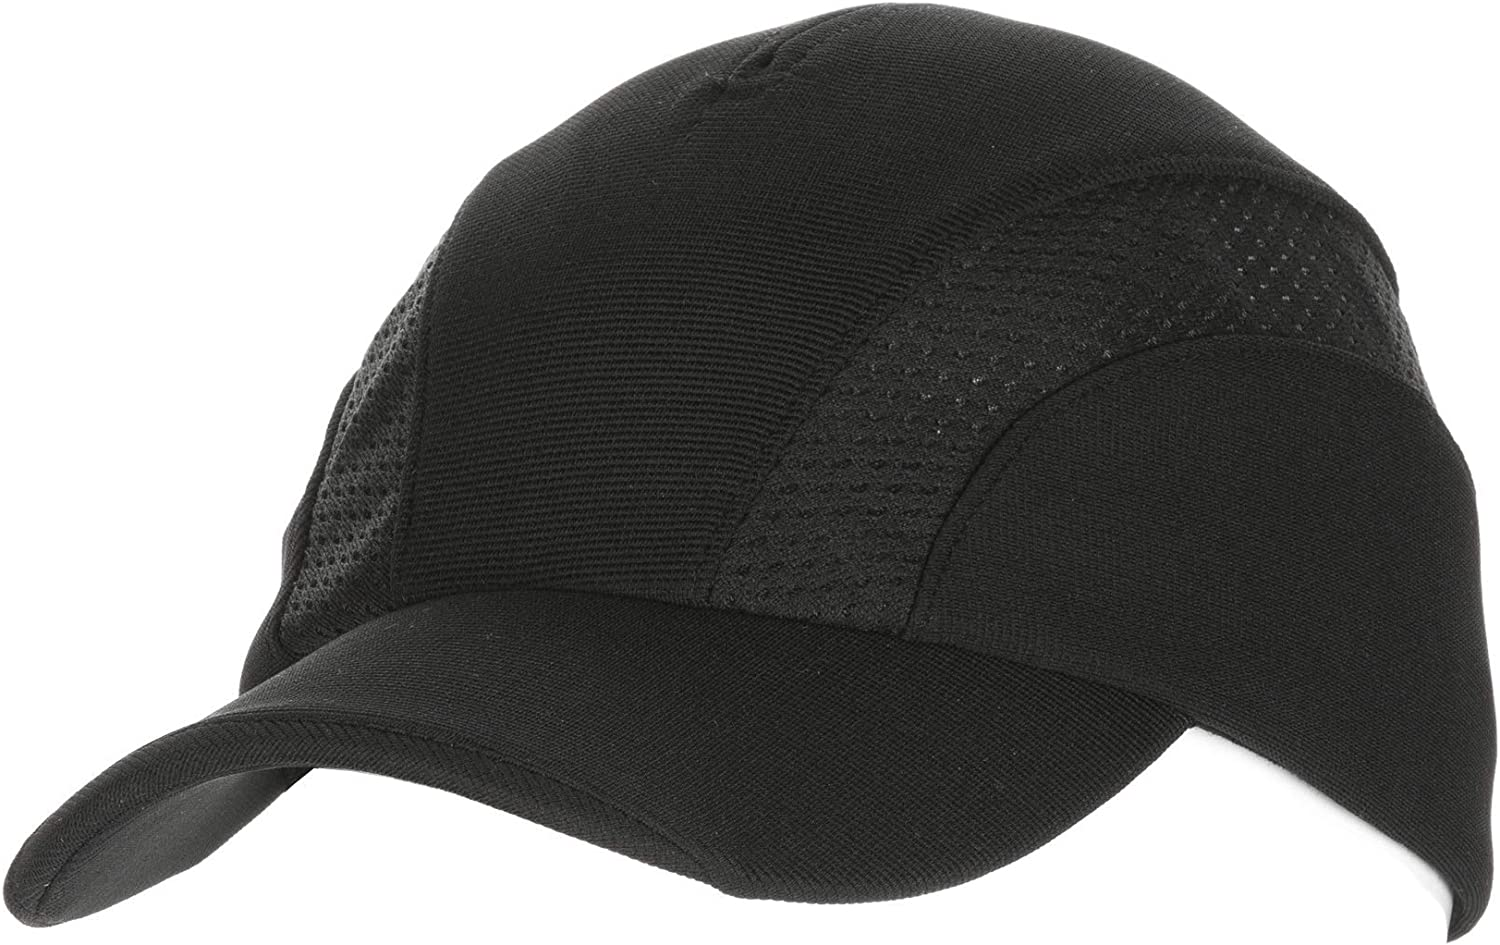 Chef Works Unisex Cool Vent Sides Baseball Cap, Black, One Size